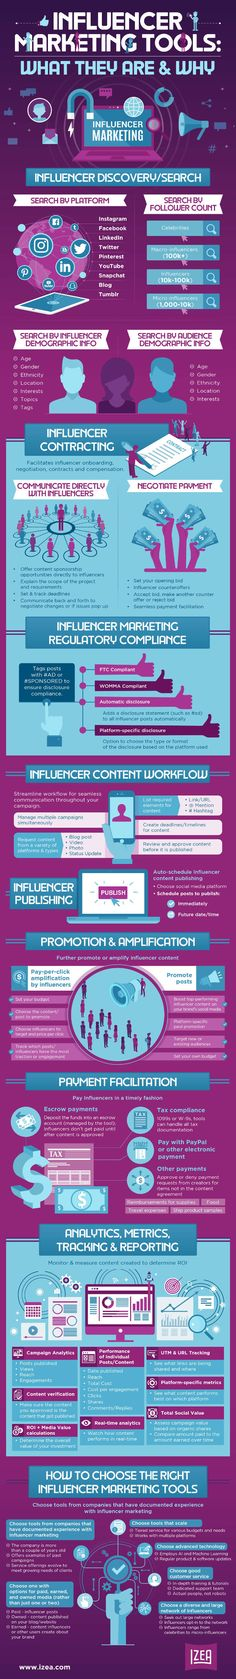 Influencer Marketing Tools & Platforms: Key Features | Infographic